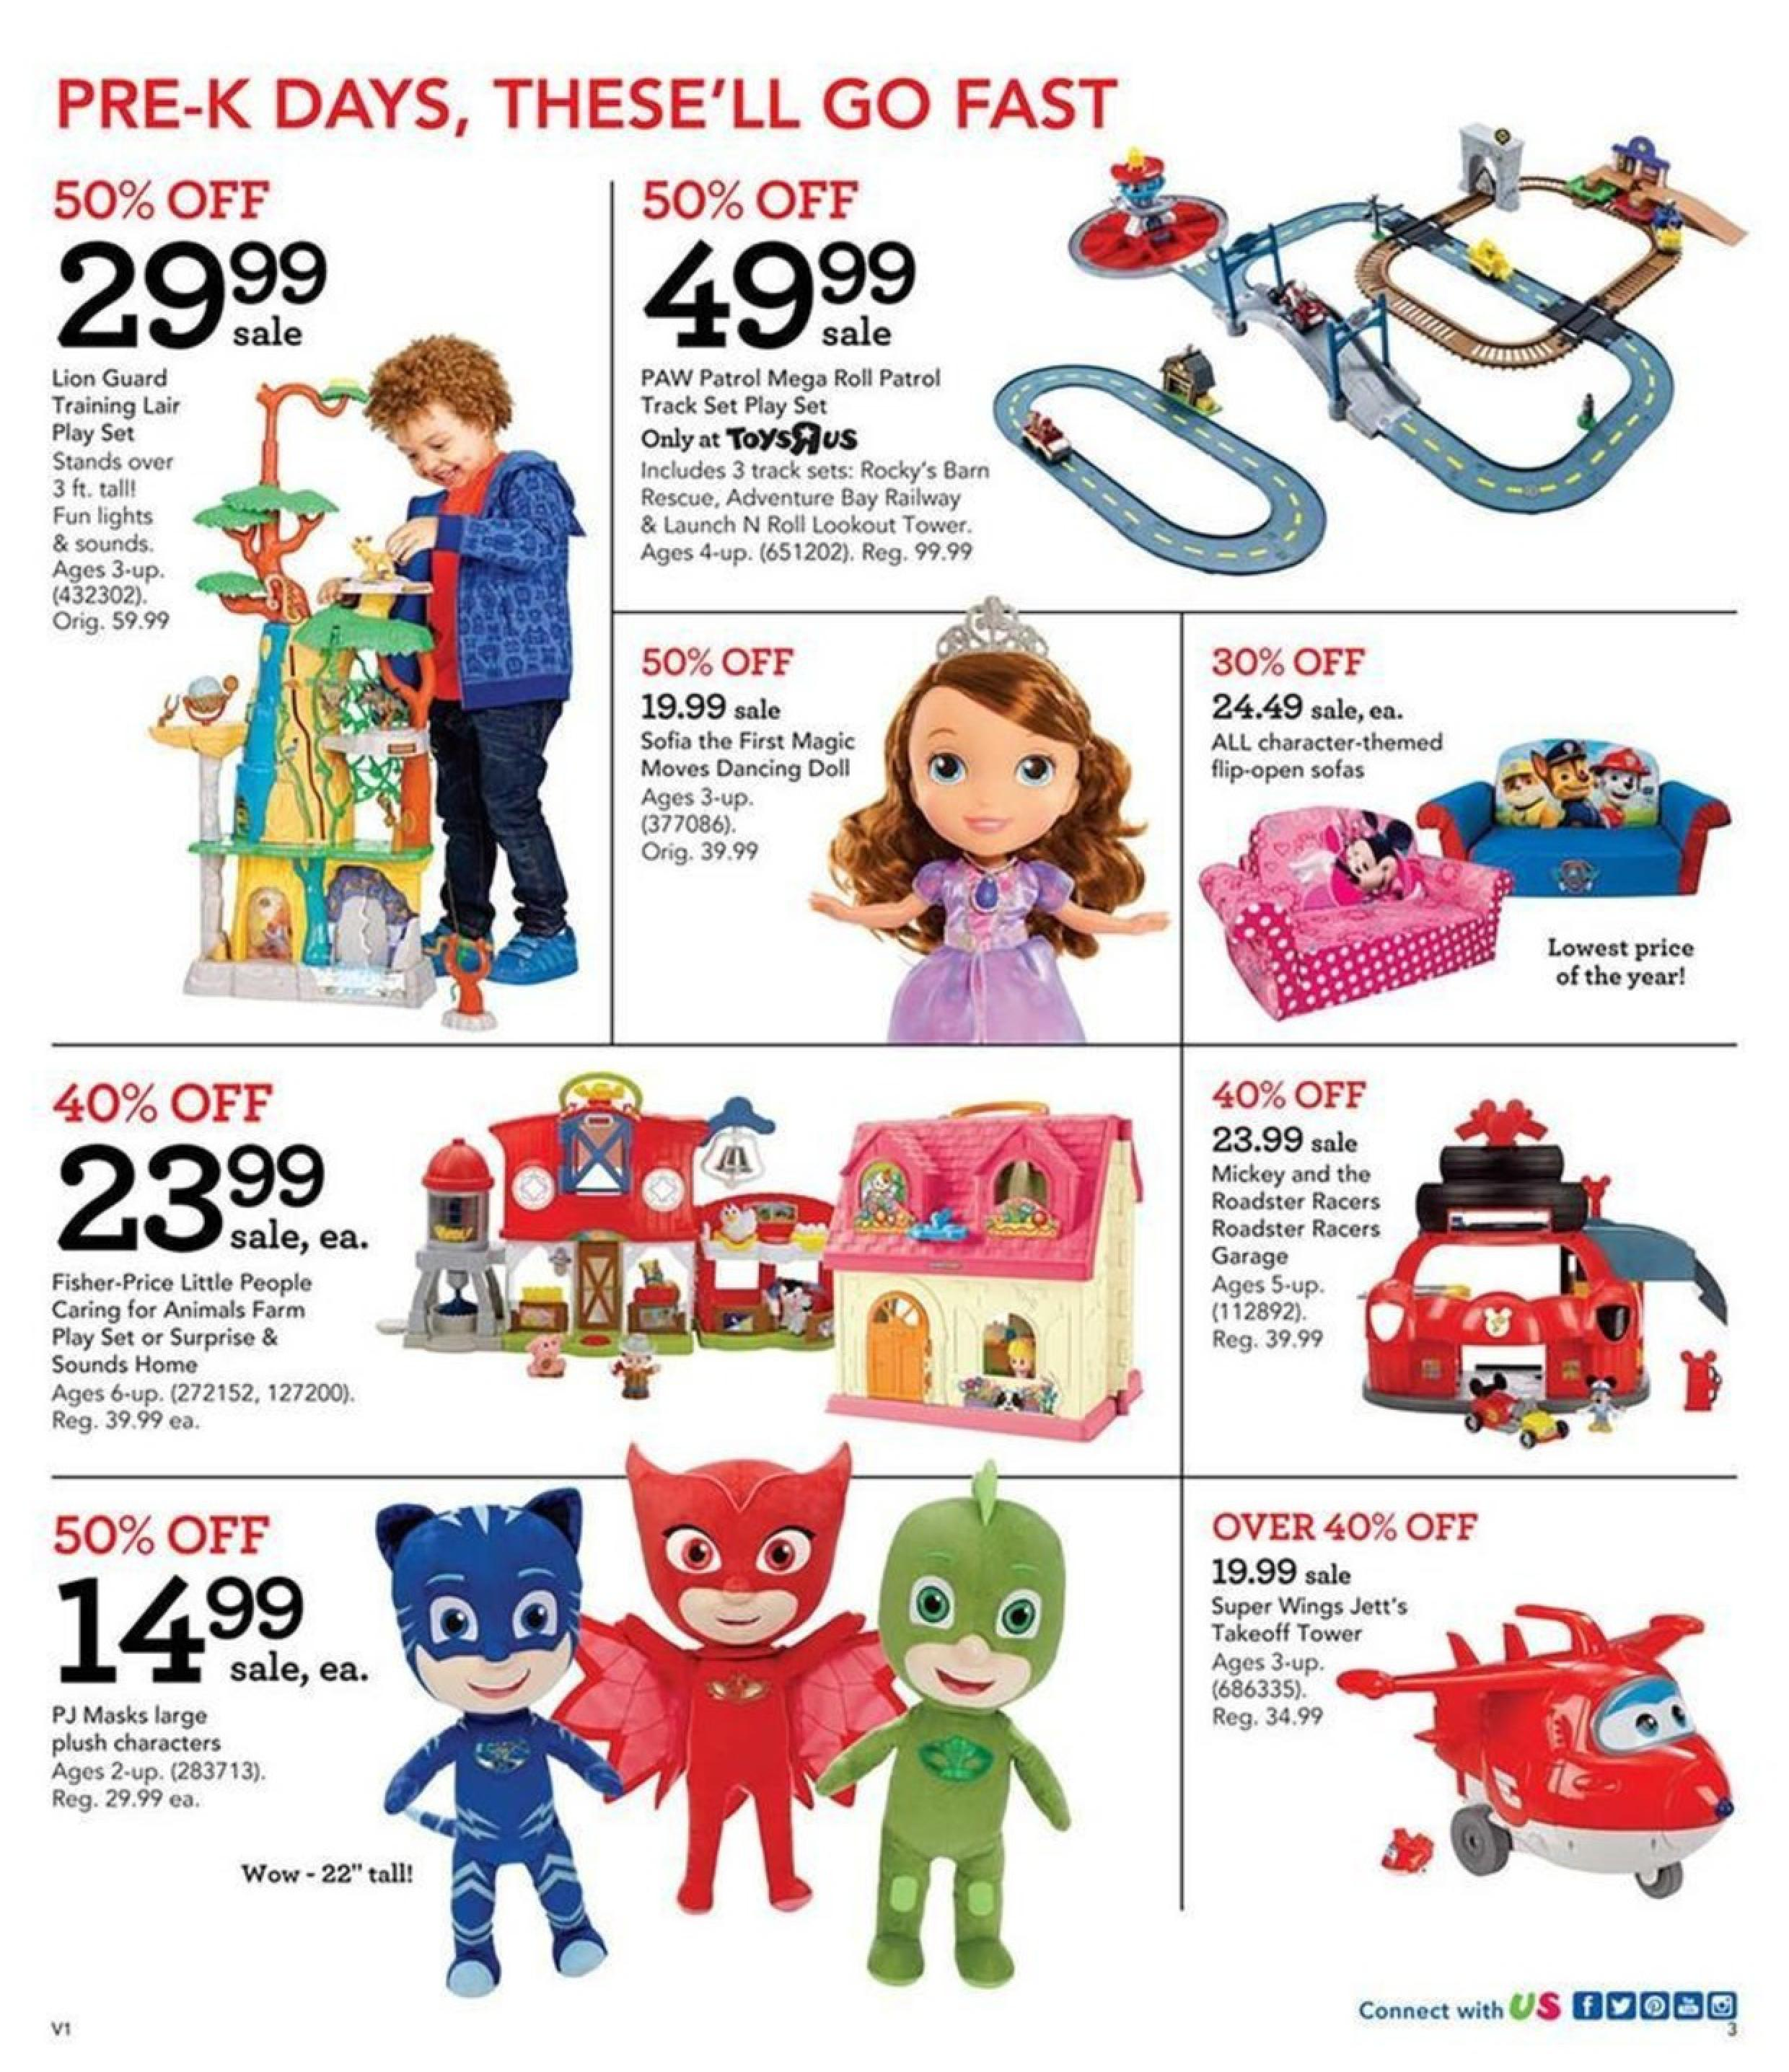 Toys R Us Black Friday 2017 Ad — The Best Toys R Us Black Friday Deals